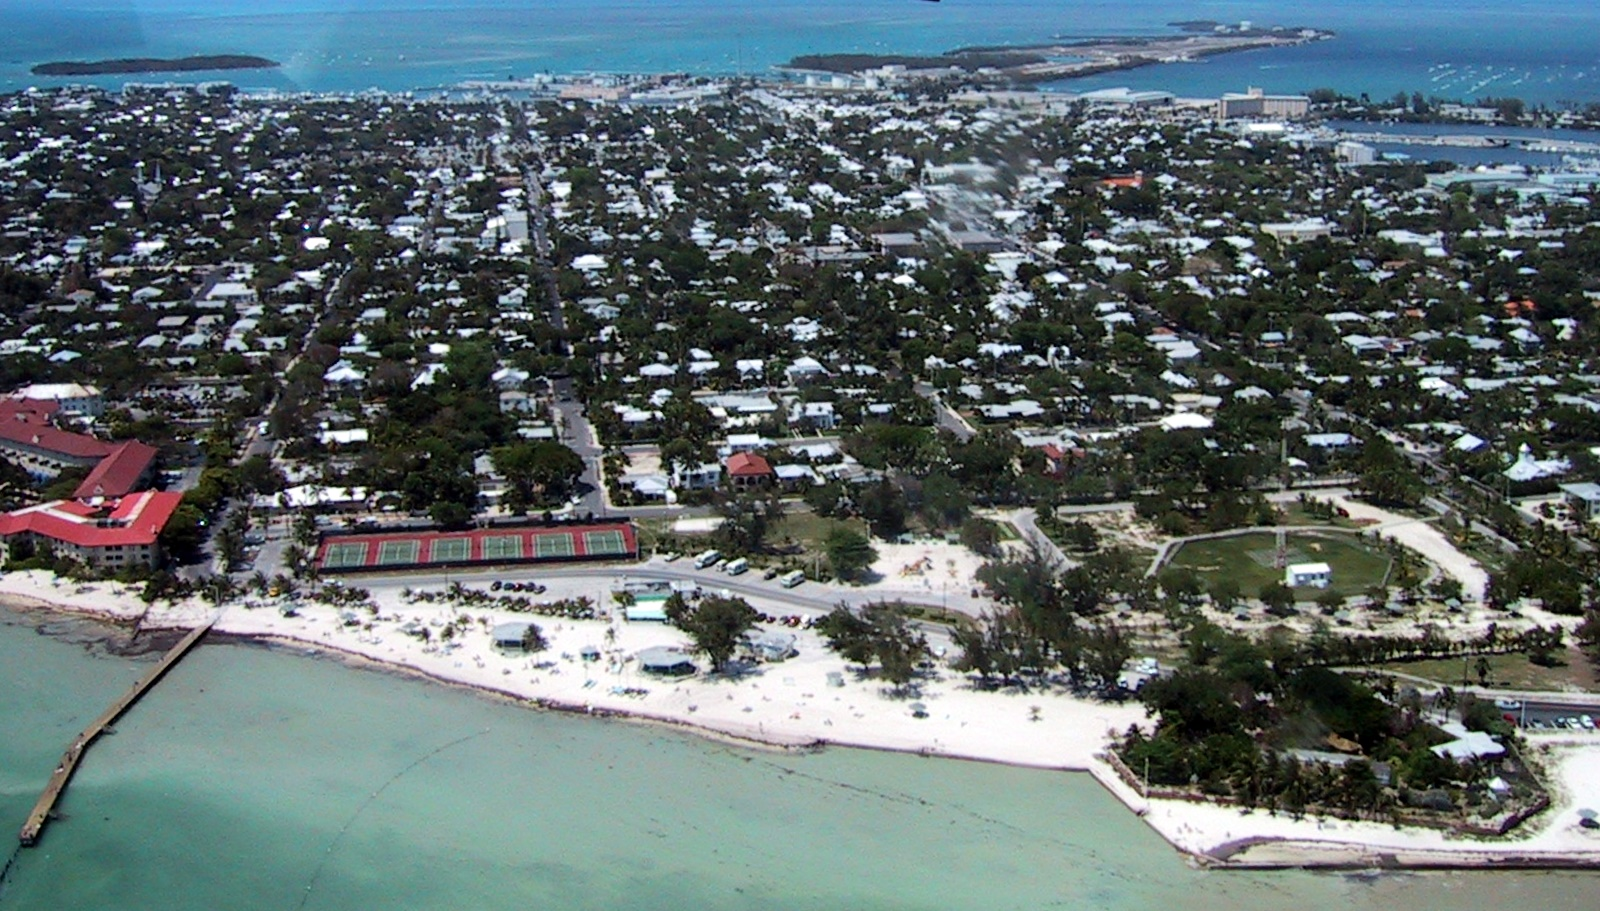 Key west Bird View 2001